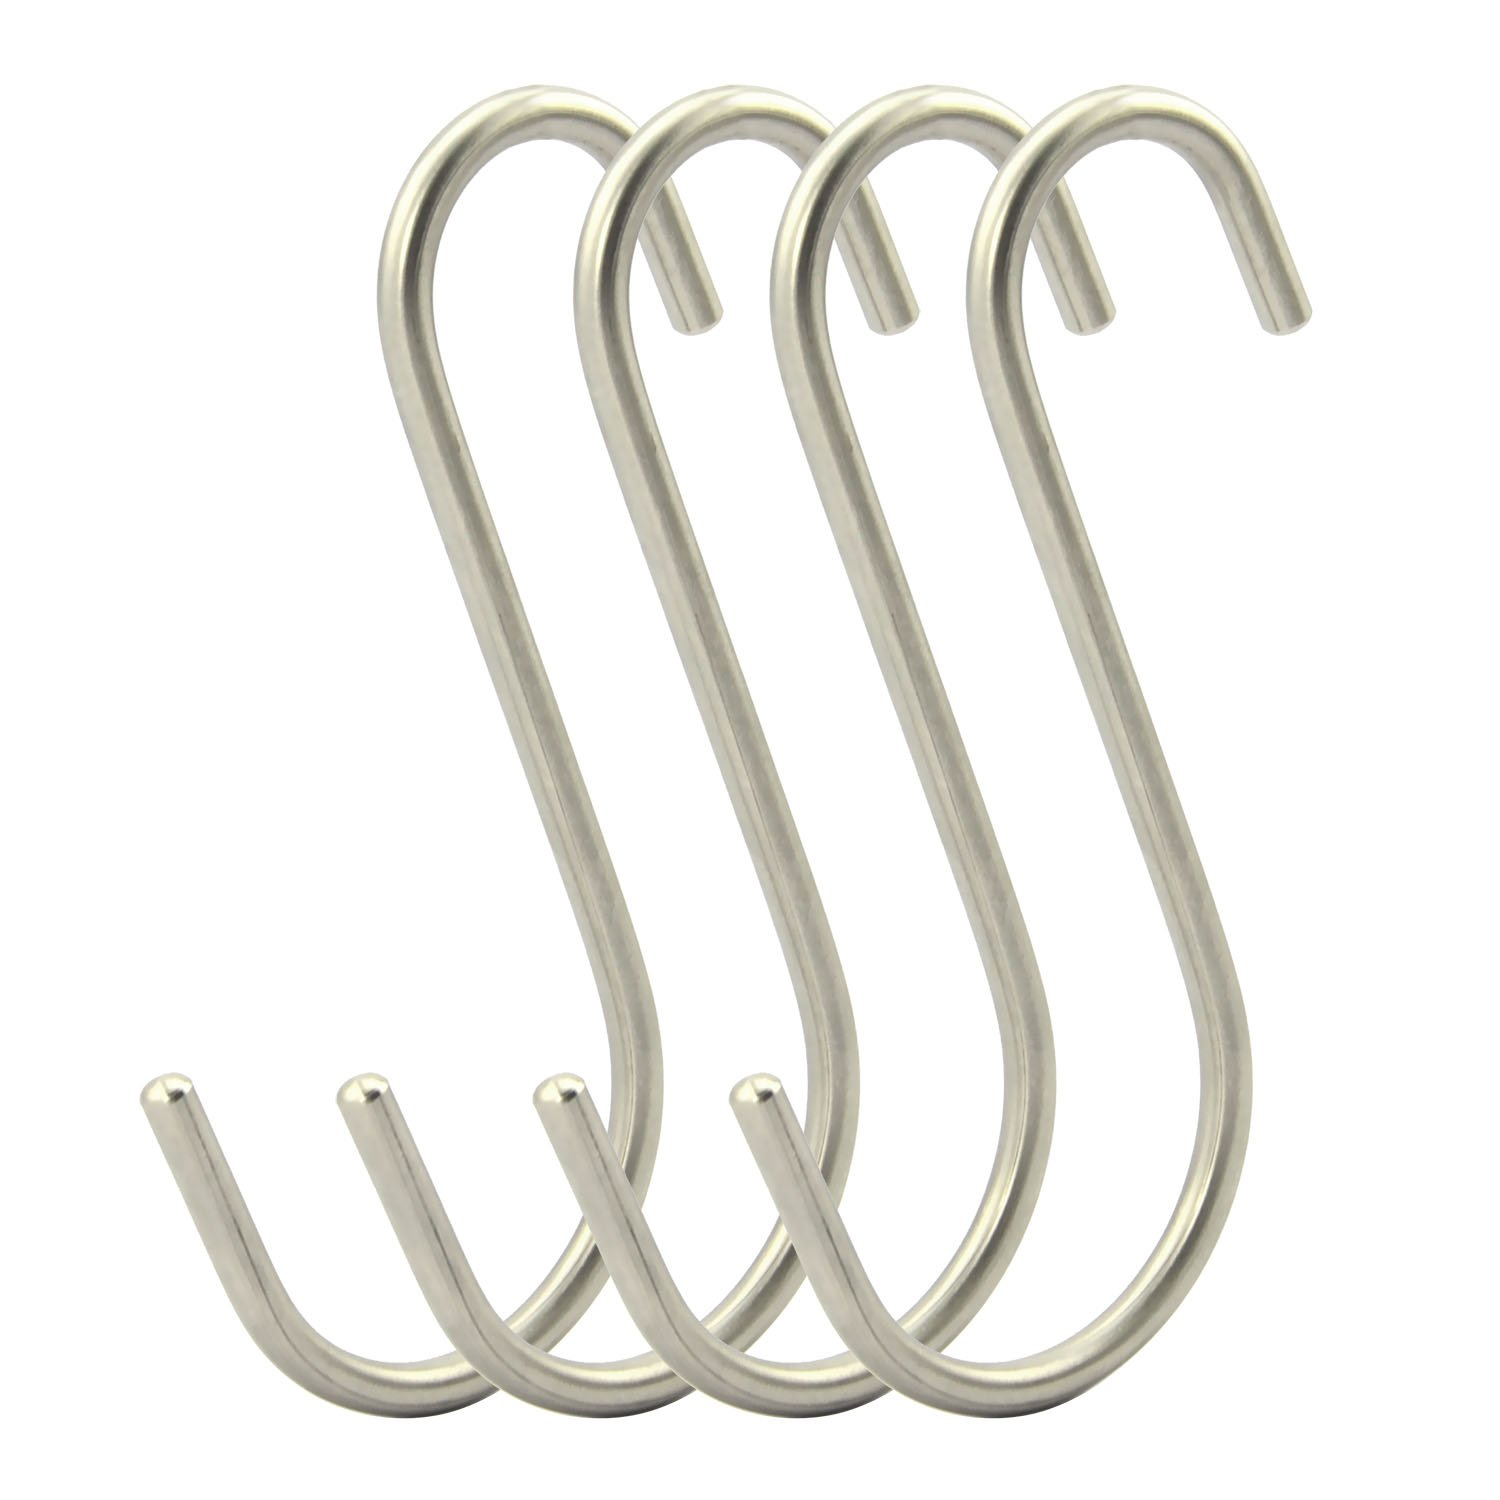 RuiLing 4-Pack Extra large Size 5.2 Inch Premium Heavy-Duty Genuine Solid Polished Stainless Steel S Shaped Hooks Heavy tool Hanging Hooks for Bathroom,office, wardrobe,Storage room,Workshop.